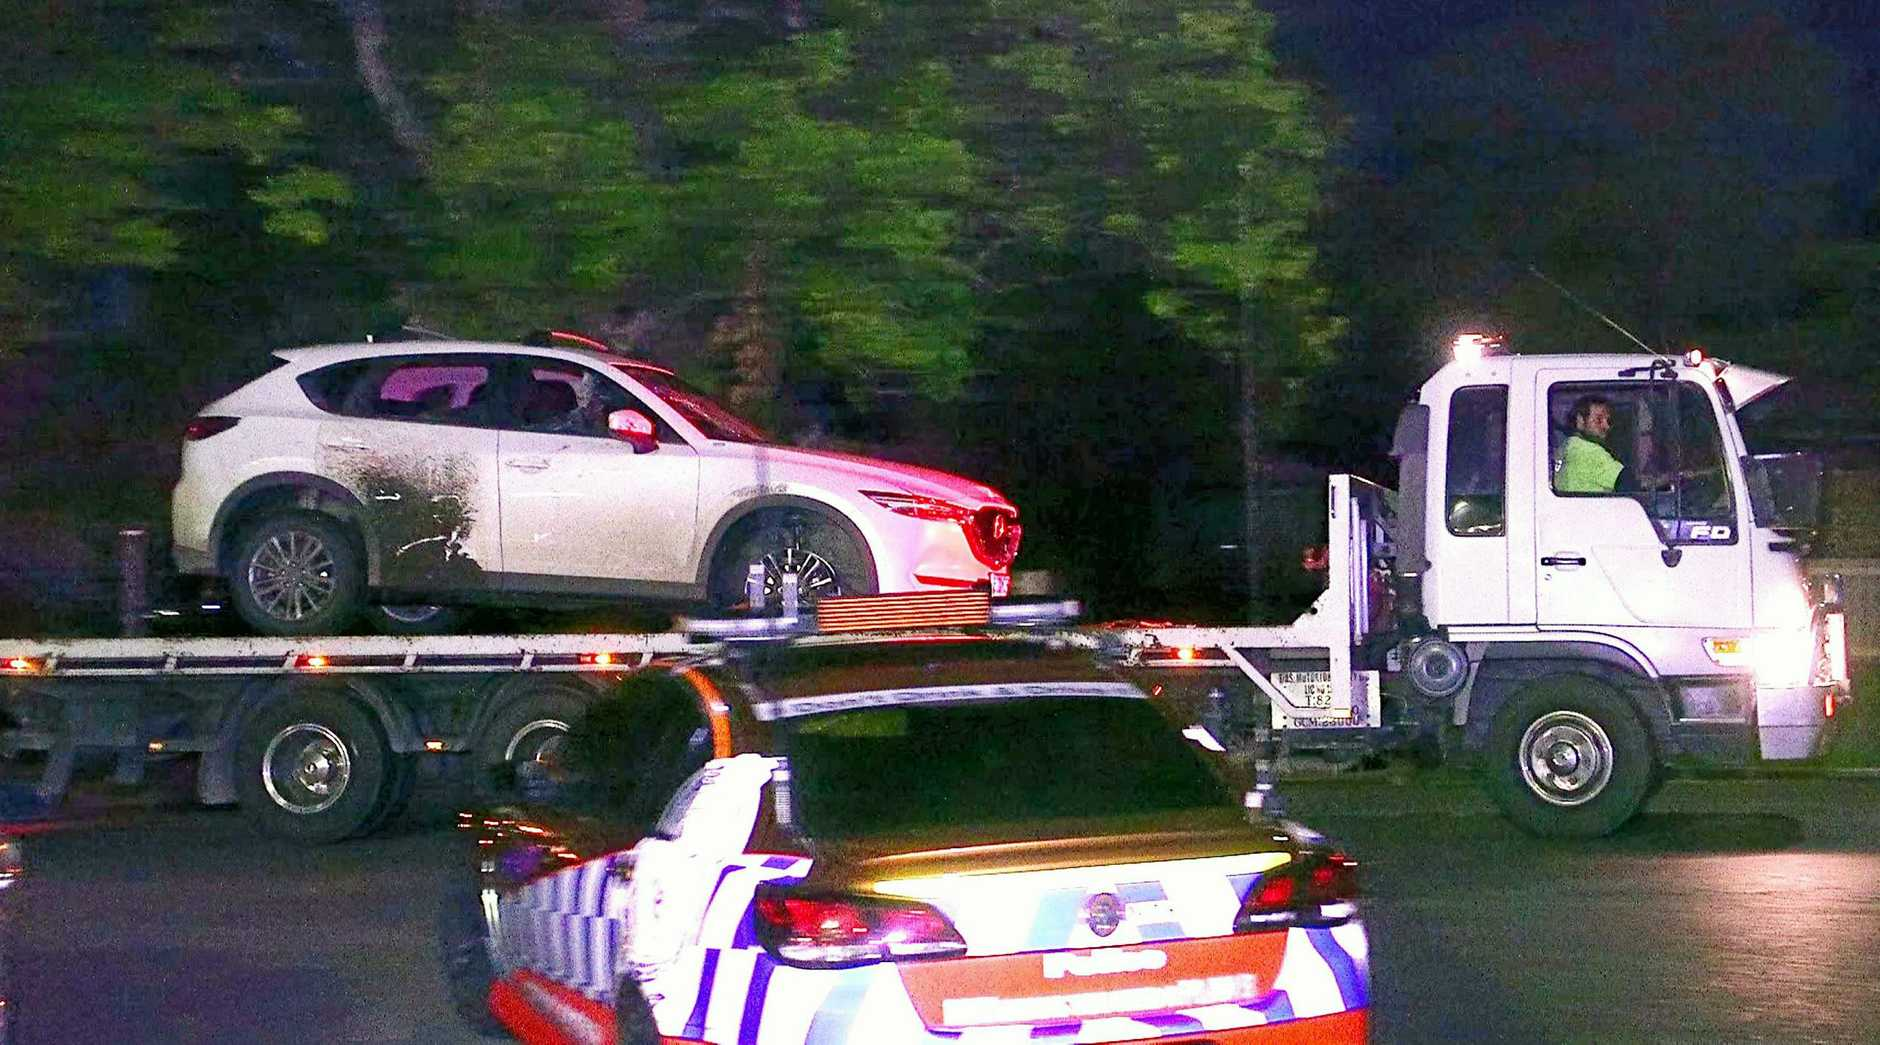 Four Queensland teens have been charged after allegedly stealing a car and then leading police on a high-speed chase.